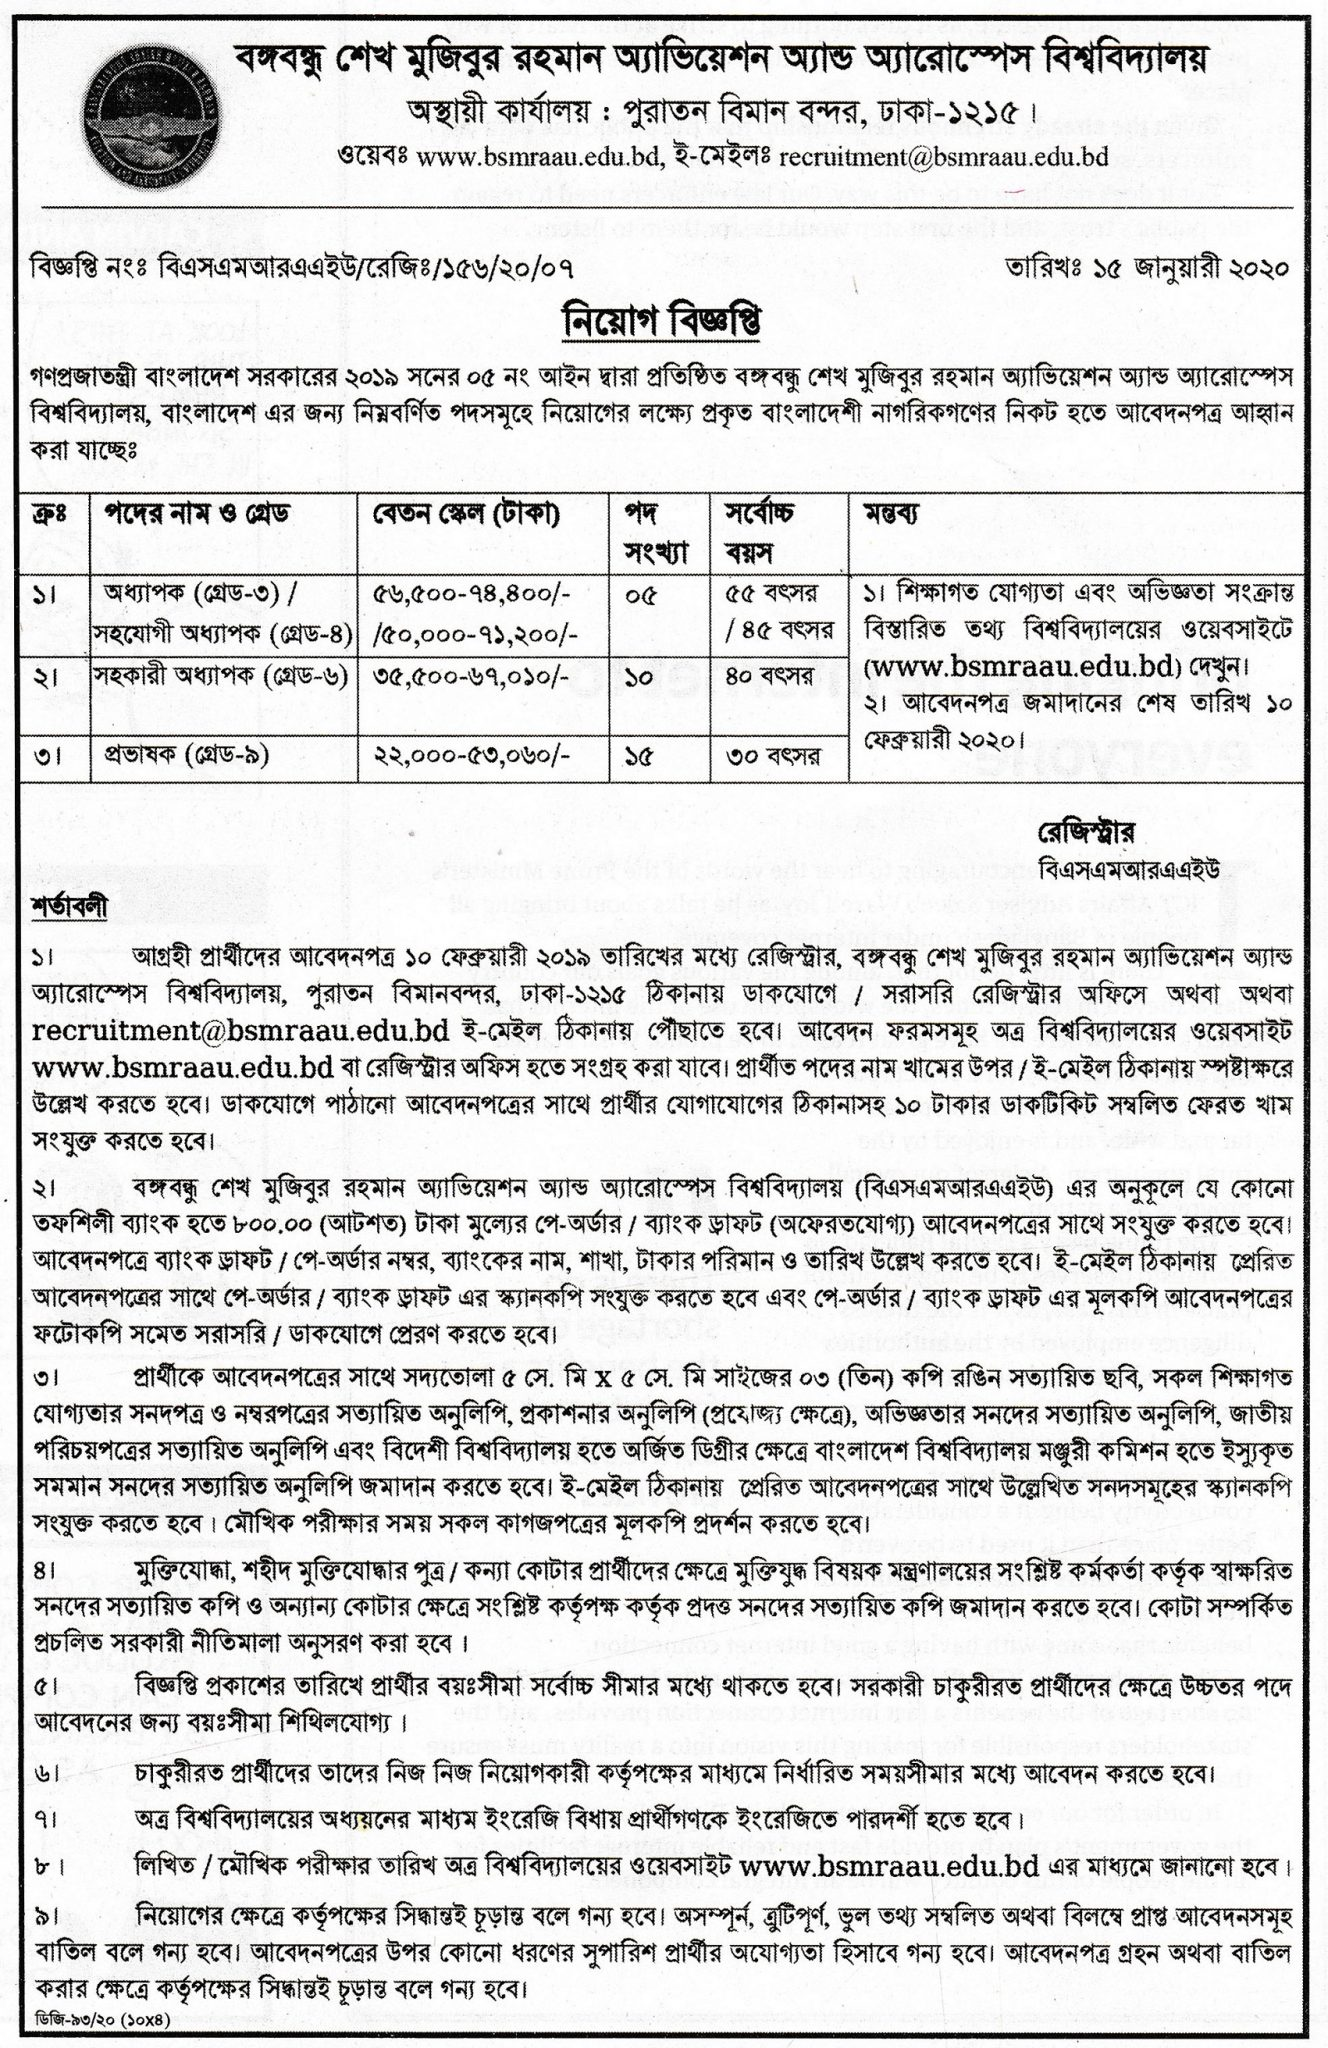 Bangabandhu Sheikh Mujibur Rahman Aviation and Aerospace University Job Circular 2020